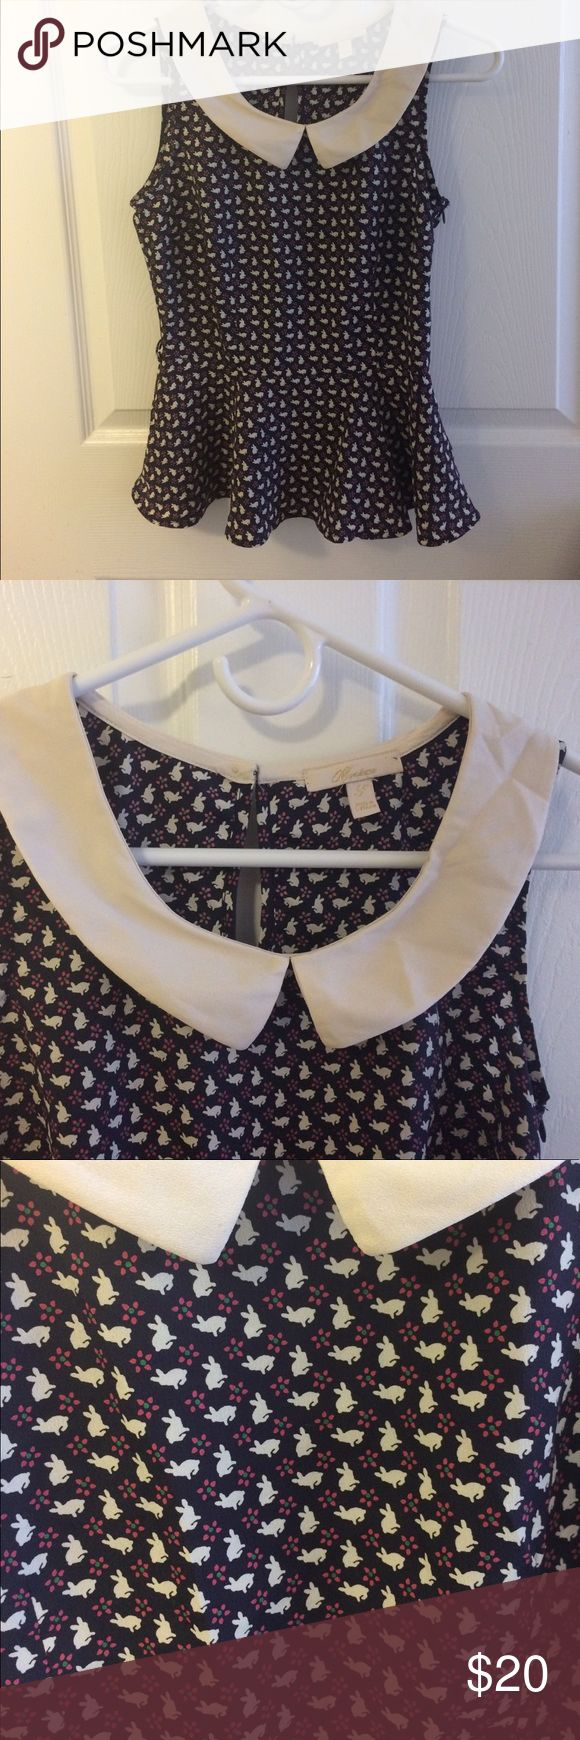 """Navy Monteau peplum top with peter pan collar Super cute and whimsical navy blue peplum top with a bunny and floral print. It has a cream colored peter pan collar and a side zipper. It has belt loops for a skinny belt, but it does not come with a belt. Lying flat it Measures 17"""" across at the bus and 13"""" at the waist. This is a reposh. It was too small, but i loved it so much I bought a larger size. Monteau Tops"""